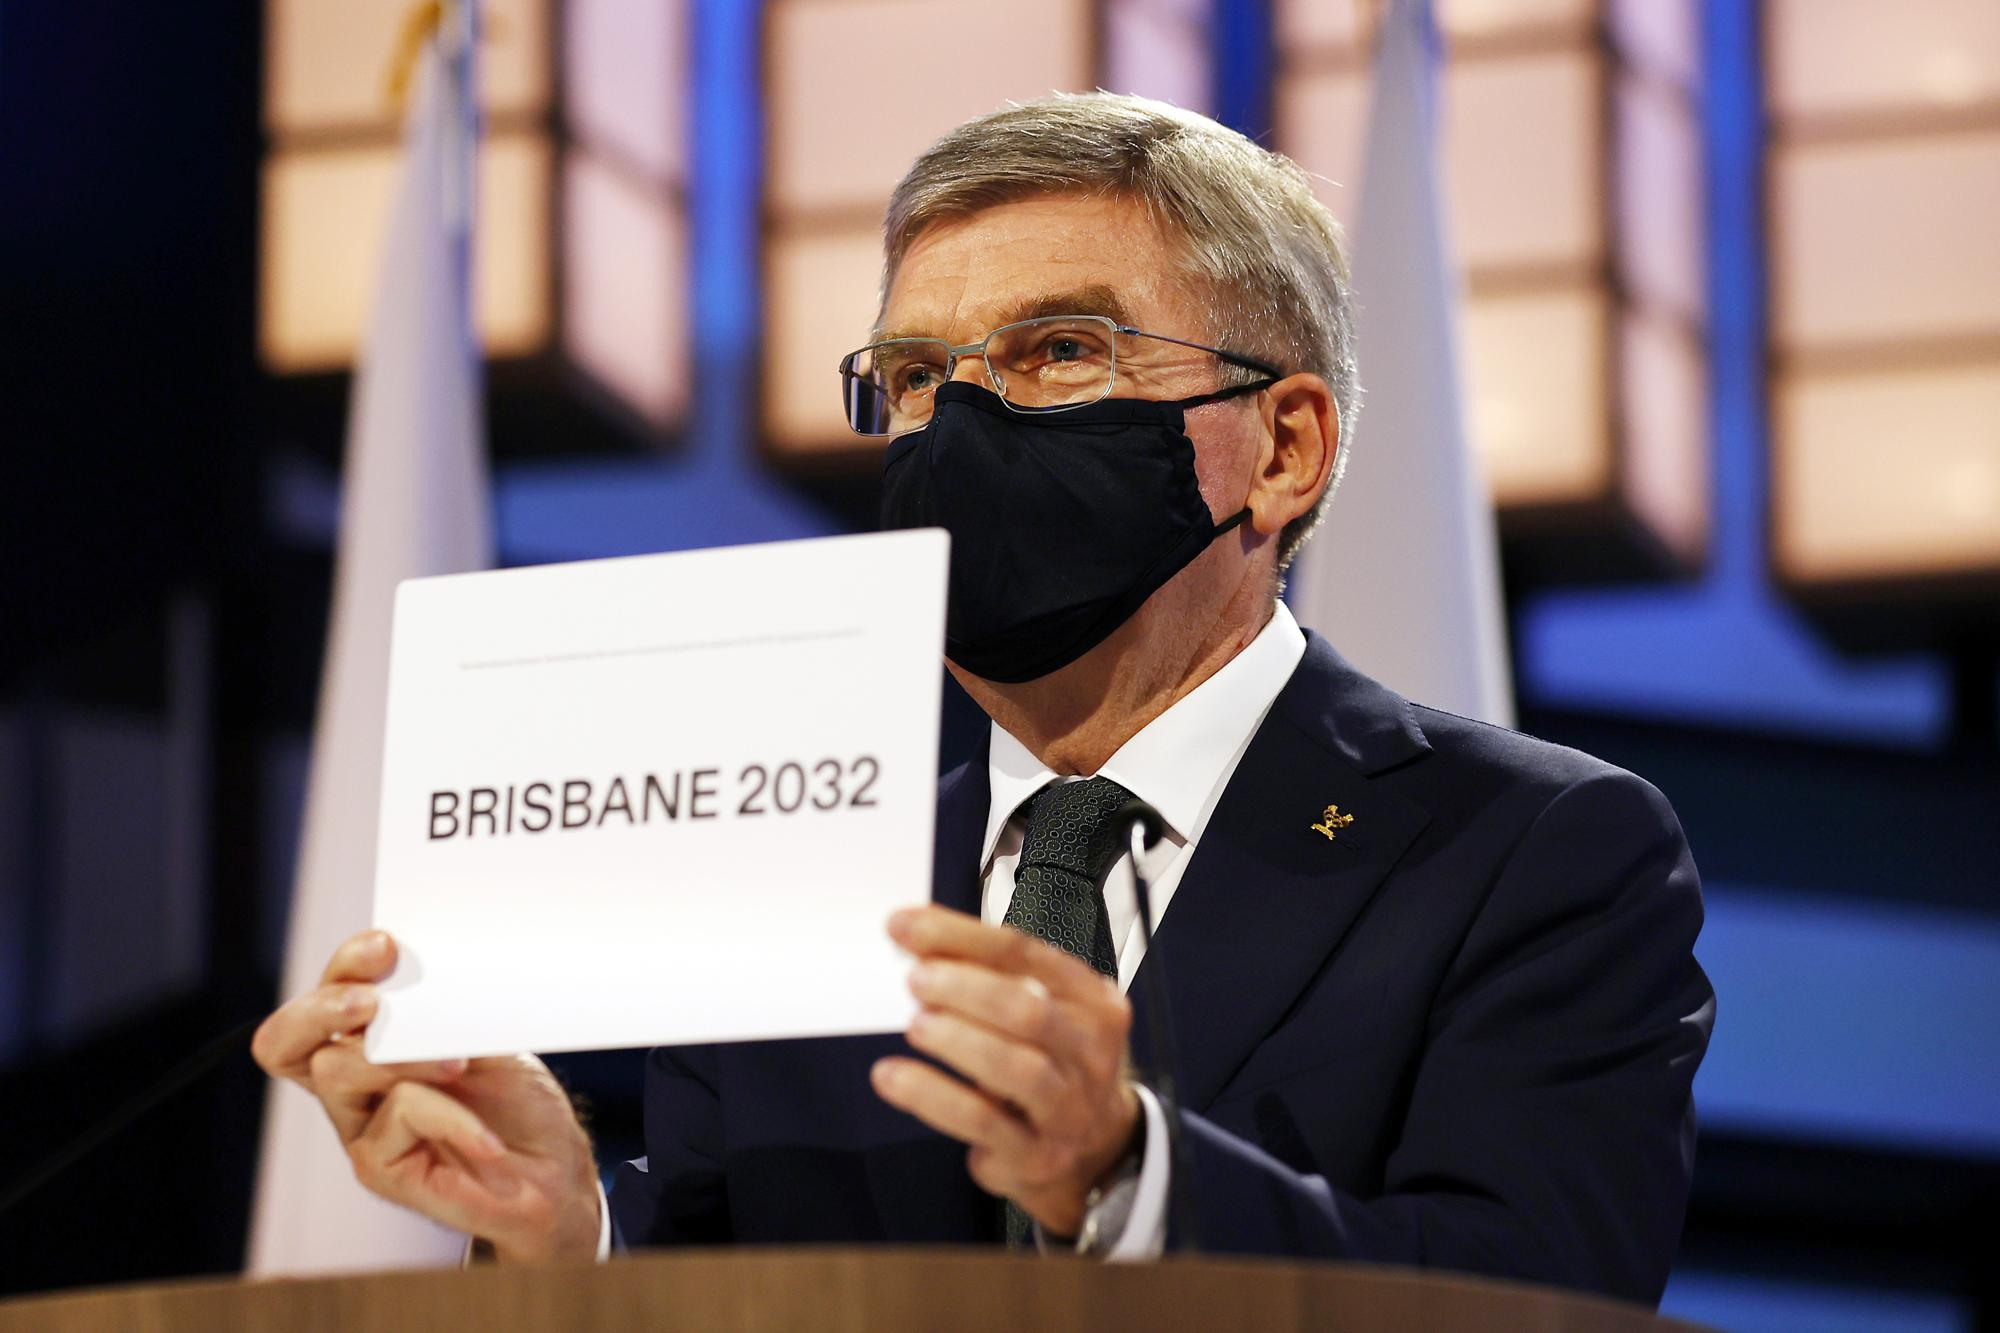 Brisbane picked to host 20 Olympics without a rival bid